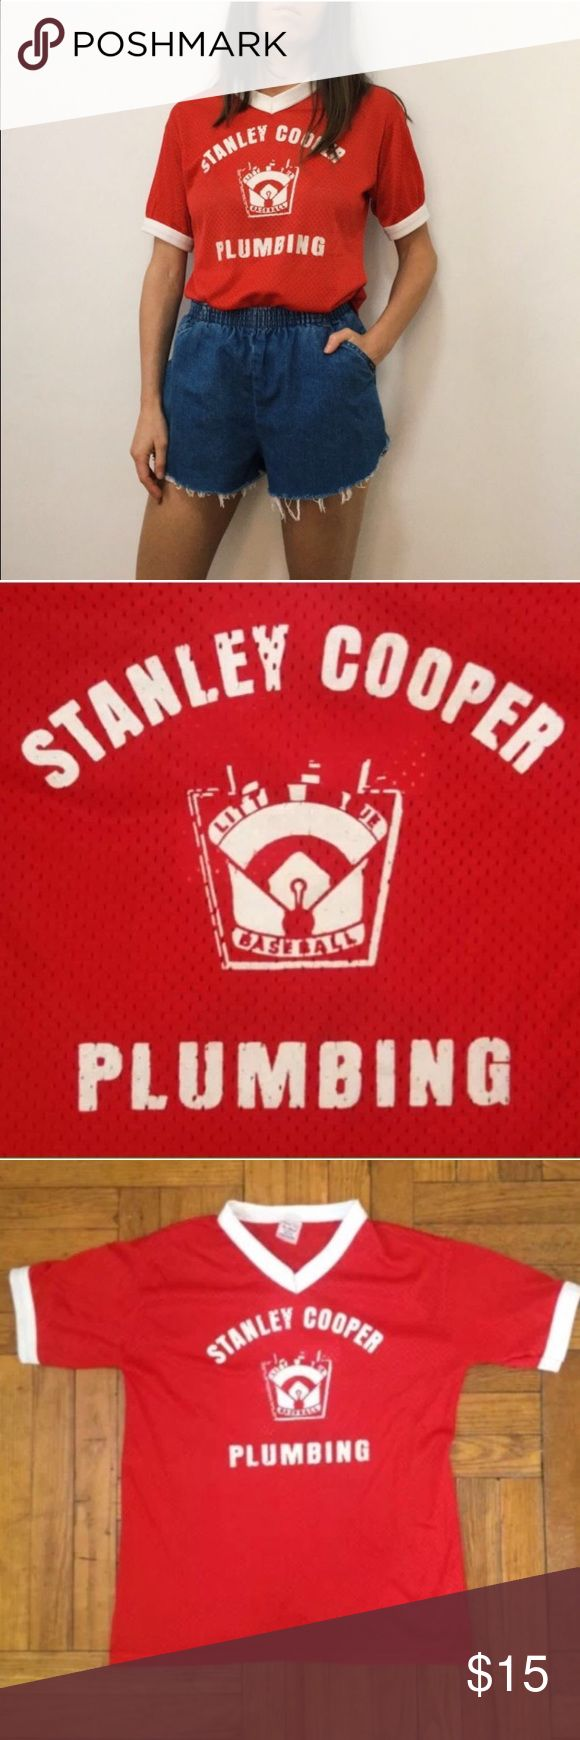 """Vintage Little League Baseball Jersey Stanley M Vintage Little League Baseball Jersey Stanley Cooper Plumbing #4 <<<<<<<<<<<<<<<<<<<<<<<<<<<<<<<<<<<<<<<<<  Red White  size youth medium 24 1/2"""" long 18 1/2"""" across chest laying flat dress form in photos is women's size 2-4  no holes or stains Vintage Tops Tees - Short Sleeve"""